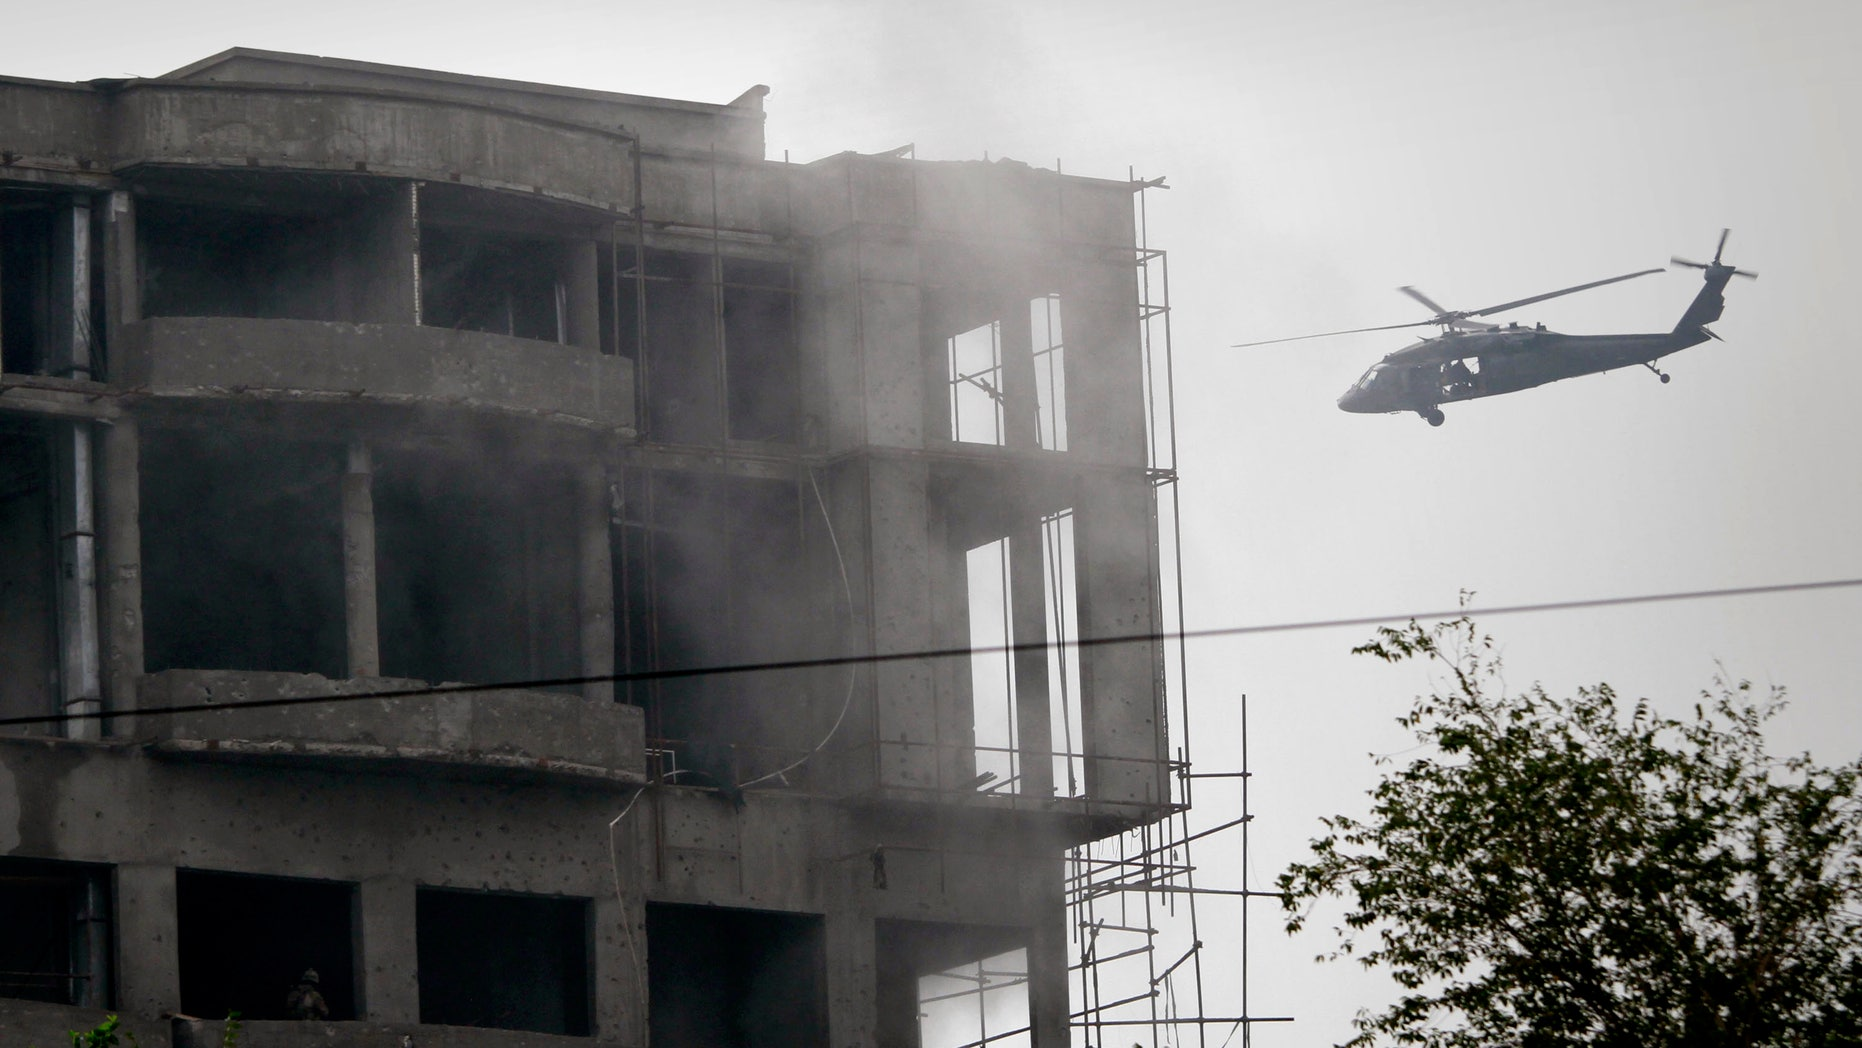 A military helicopter belonging to coalition forces flies around a building during a gun battle with Taliban militants in Kabul, Afghanistan on Wednesday Sept. 14,2011.